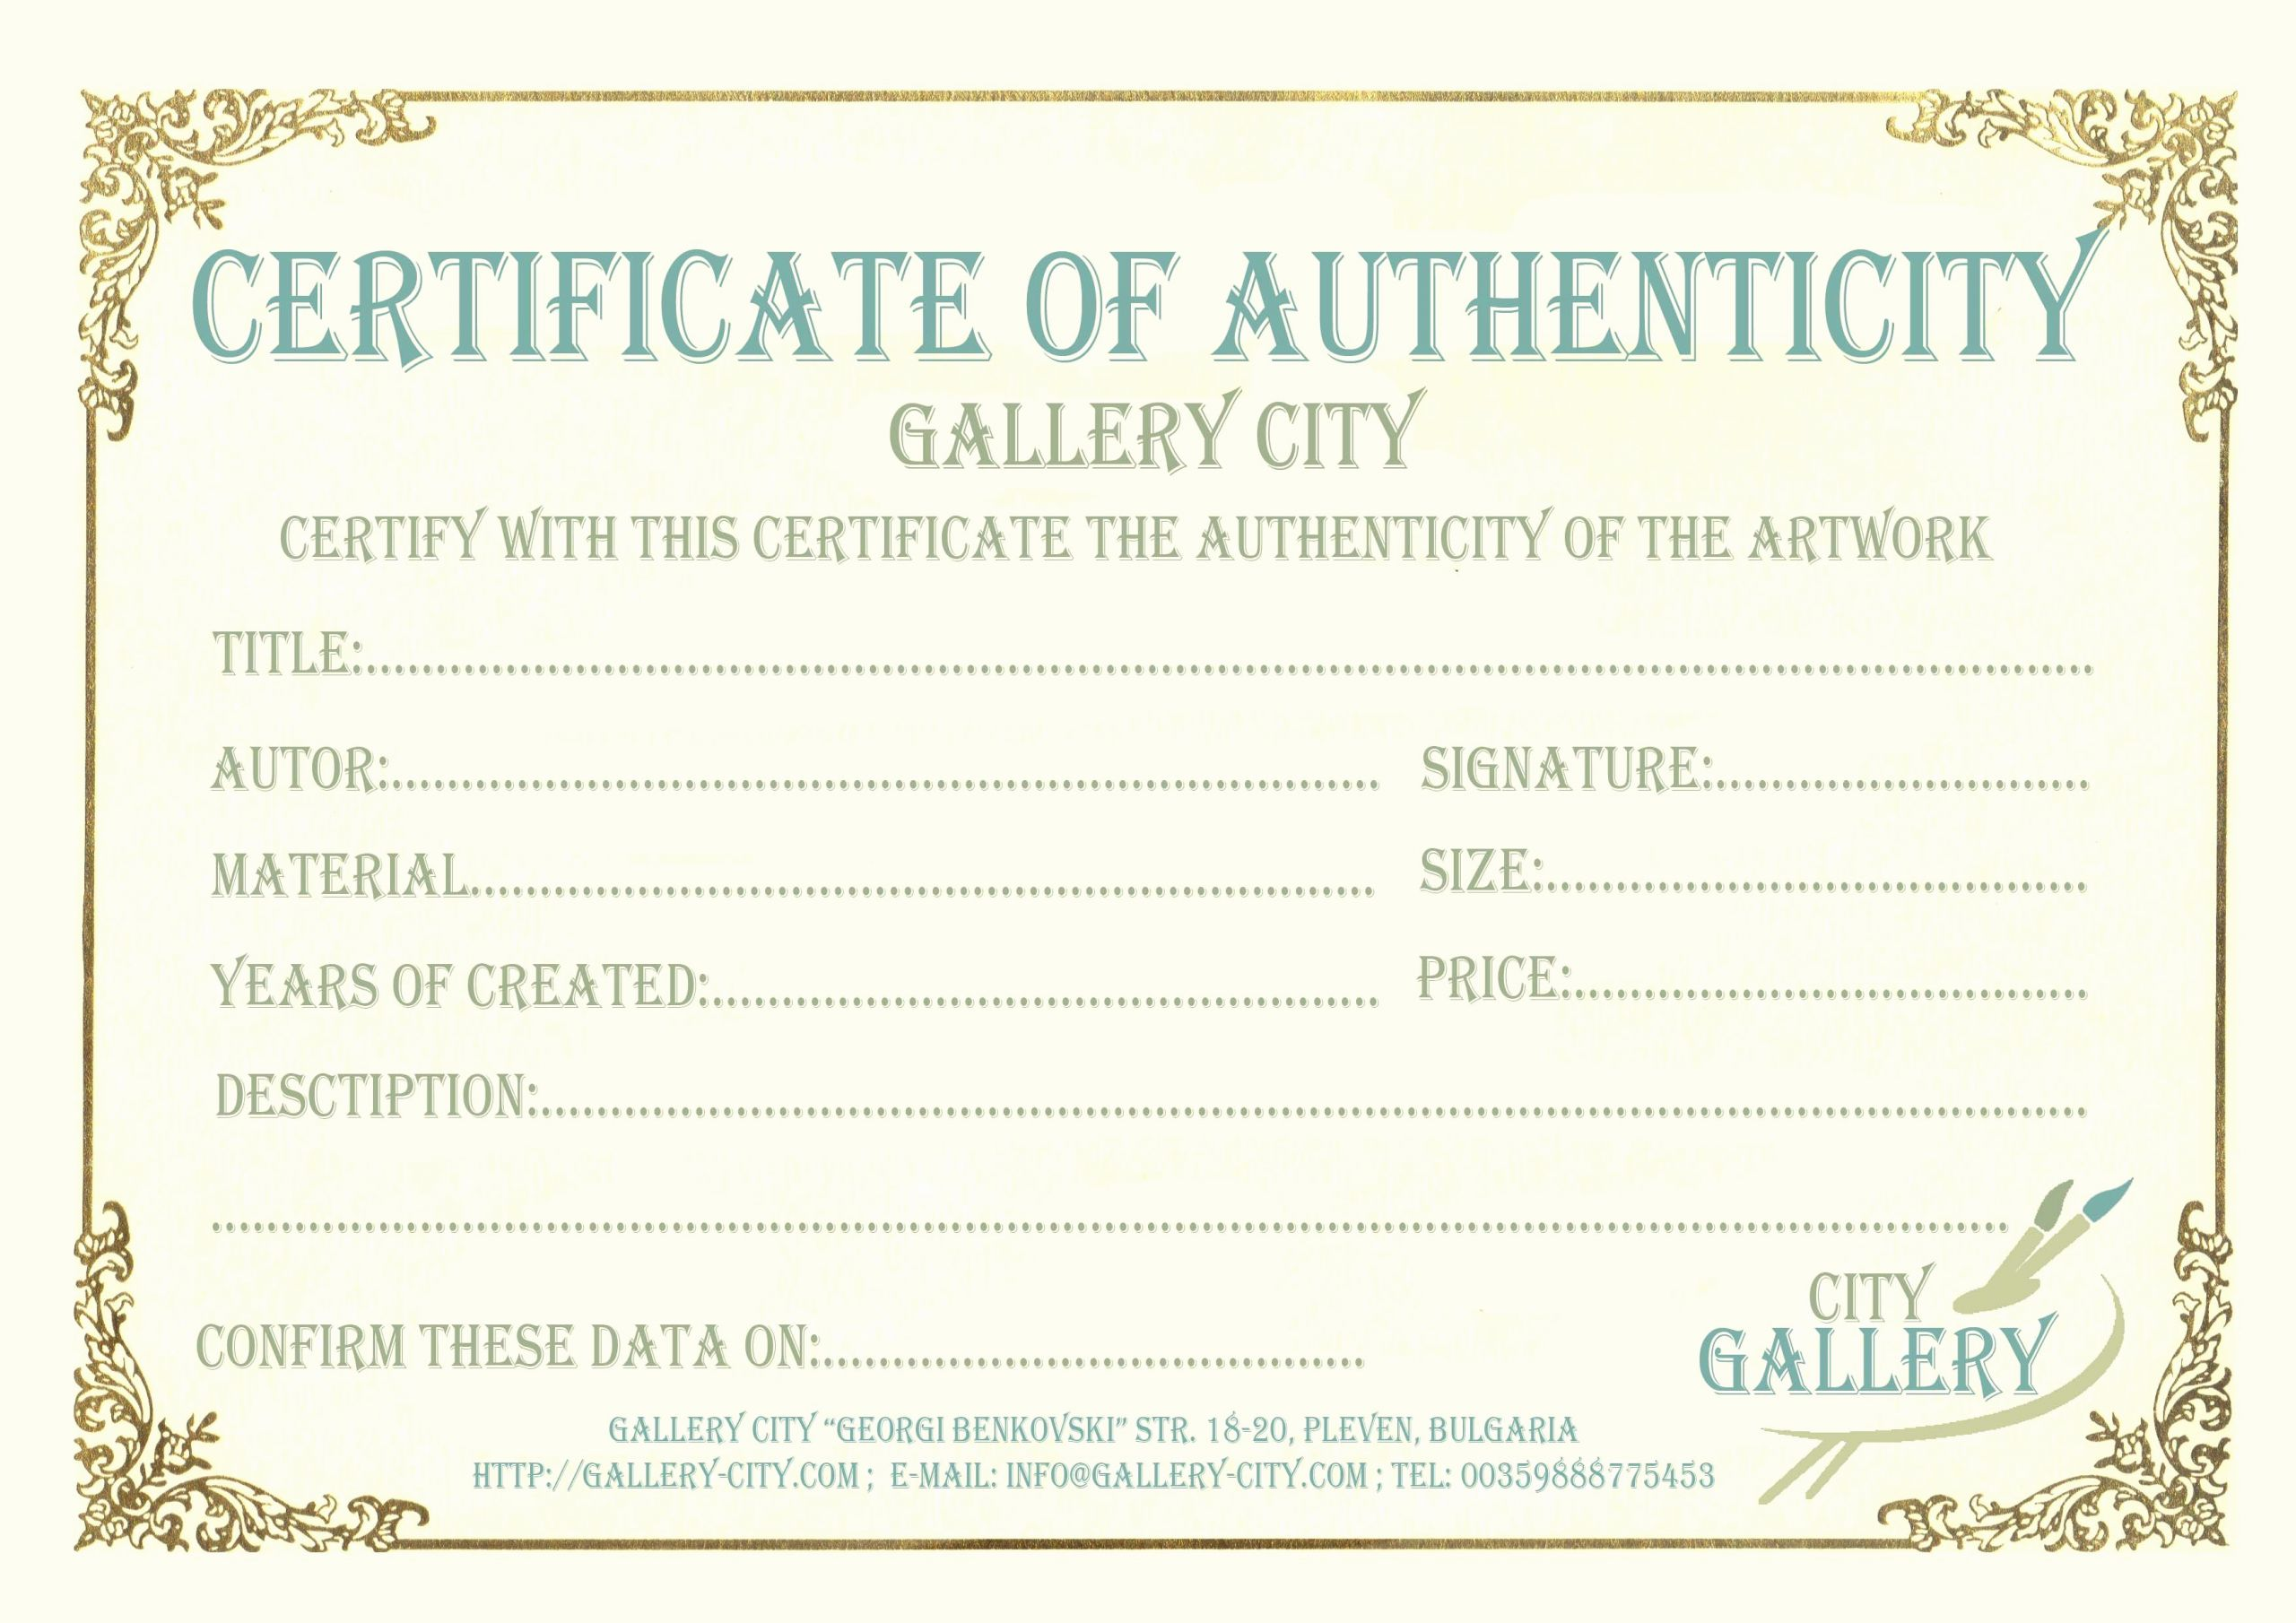 Artwork Certificate Of Authenticity Templates Awesome Certificate Authenticity Template Art Authenticity